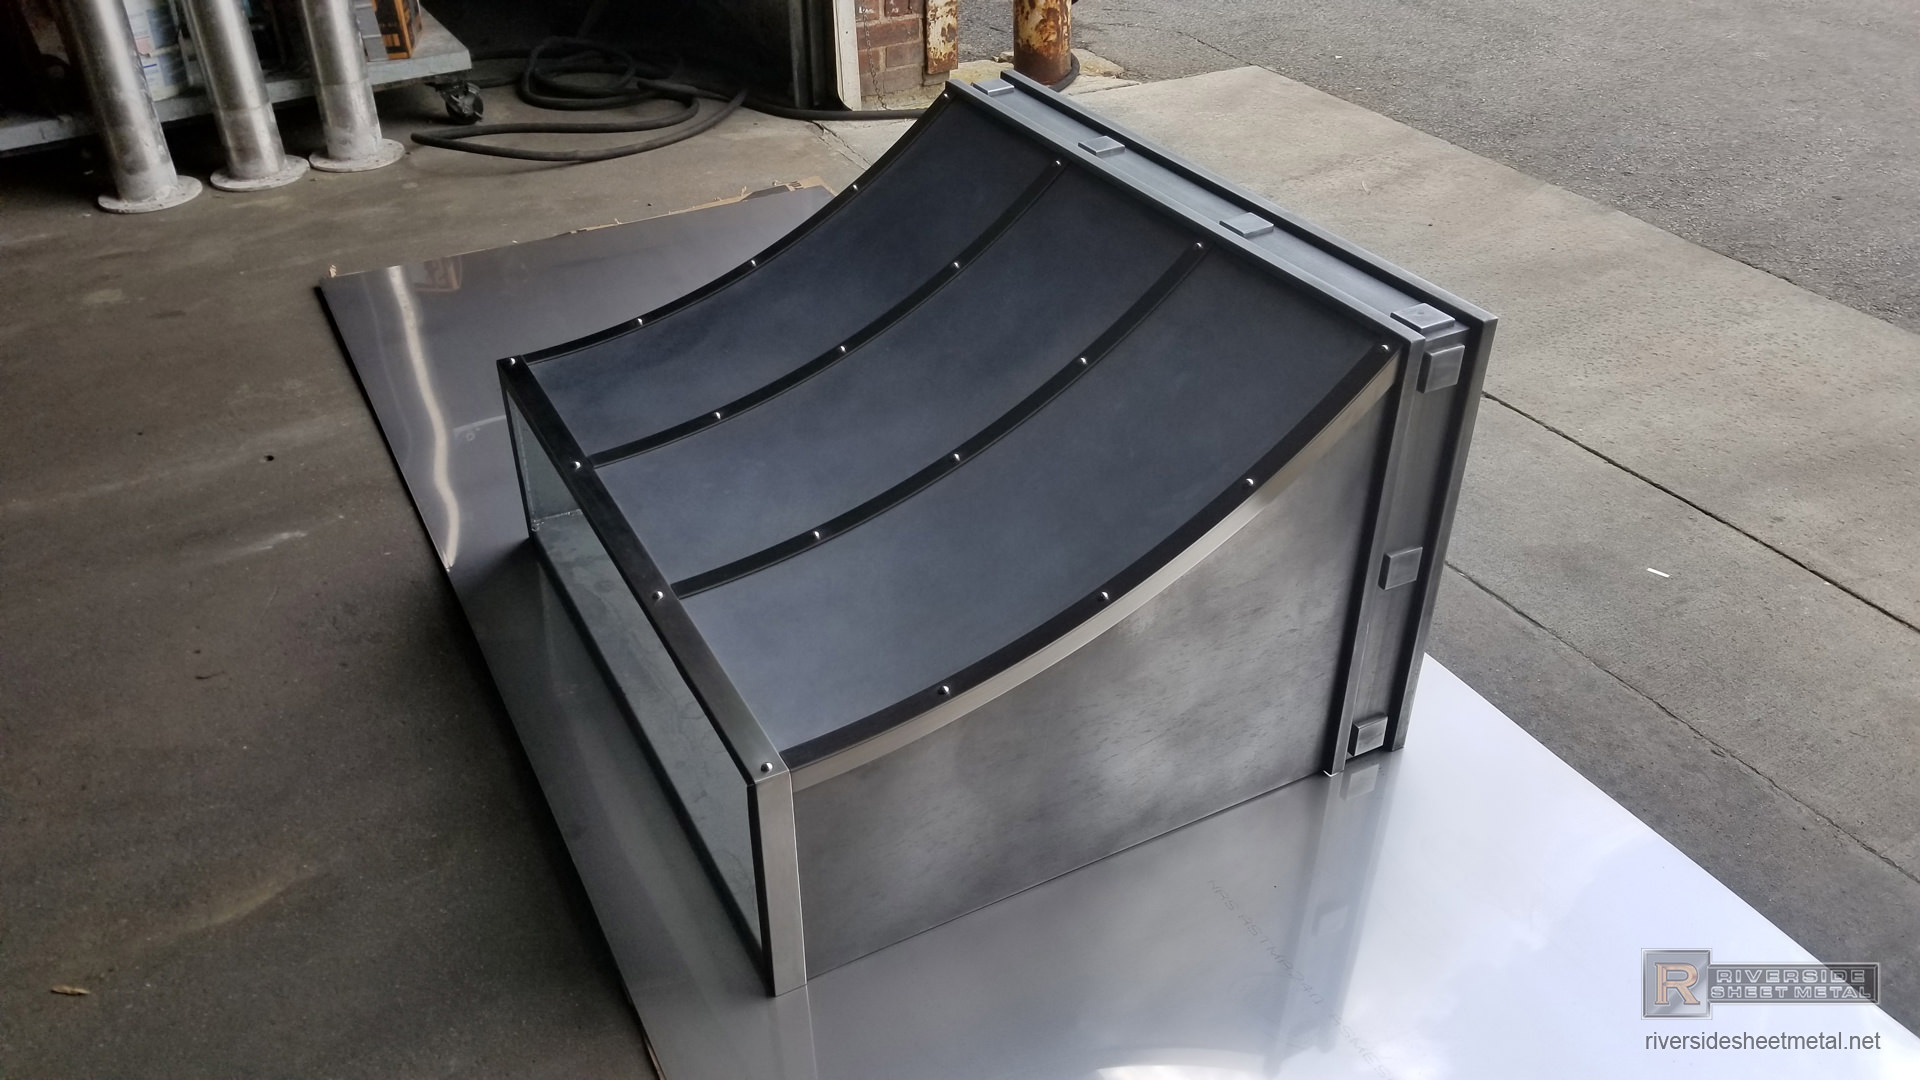 Dark Patina Kitchen Zinc Hood Vent With Stainless Steel